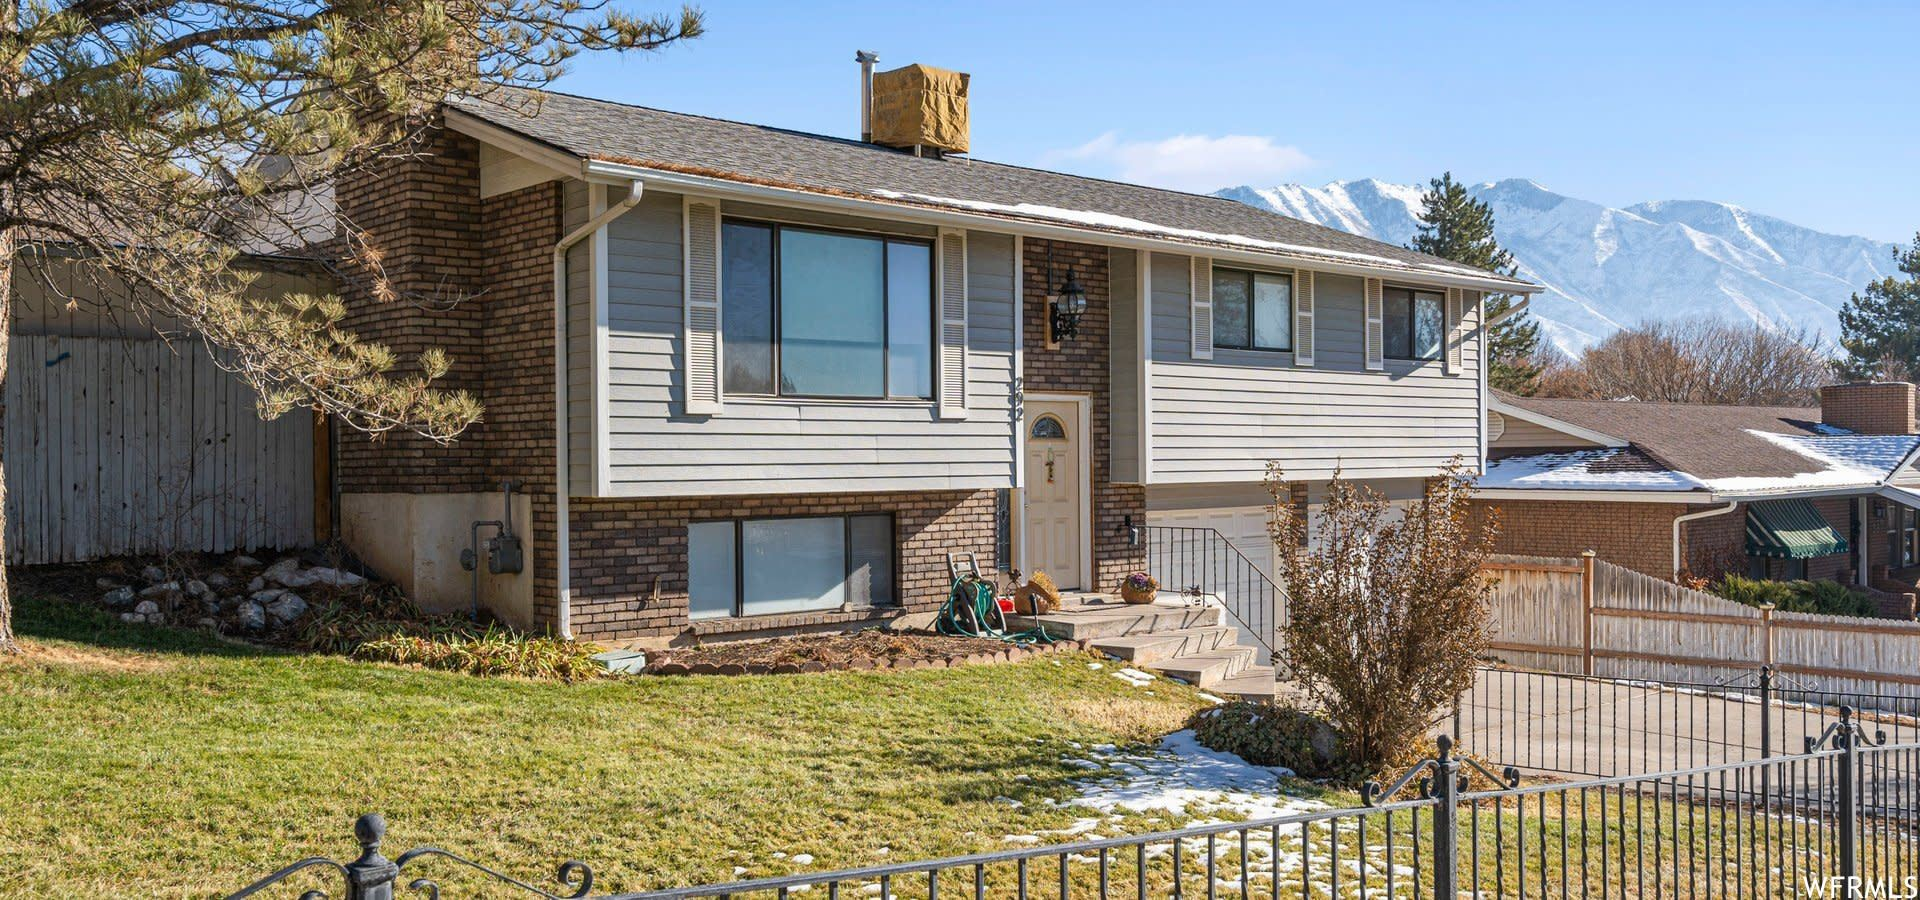 Photo of 292 N 1100 E, Springville, UT 84663 (MLS # 1717873)